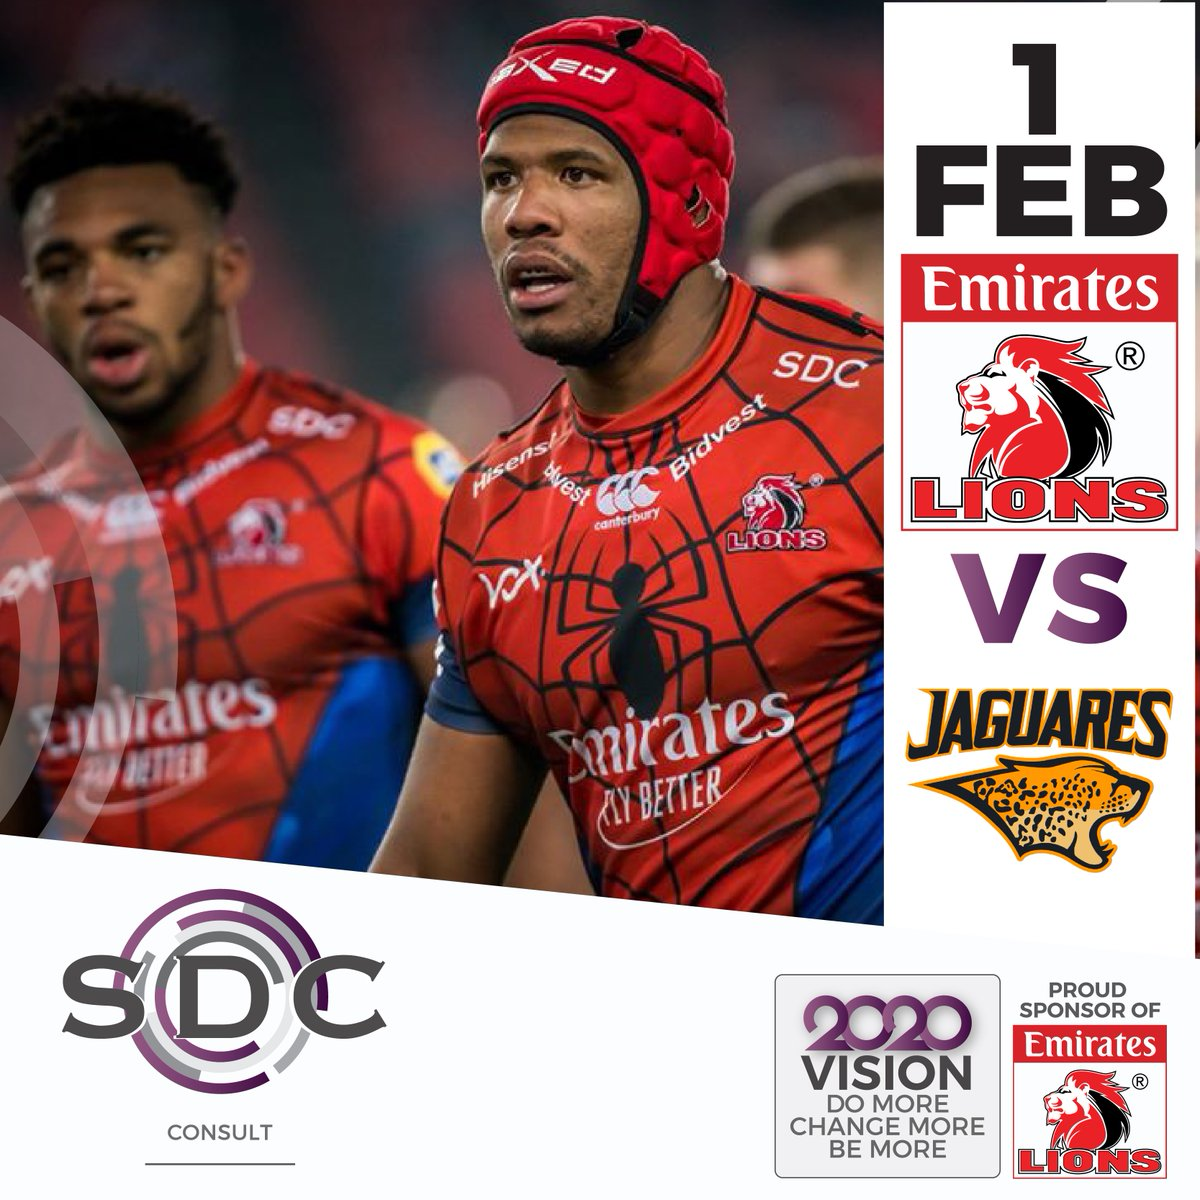 Can you believe we are a little more than 2 weeks away from kick off of the @LionsRugbyCo's 2020 @SuperRugbyNZ season!  On 1 February 2020 the Emirates Lions take on the Jaguares!  We are proud to once again be an official sponsor!   #WeAreTheDifference #2020Vision #LionsPridepic.twitter.com/hgeJBQHGOq